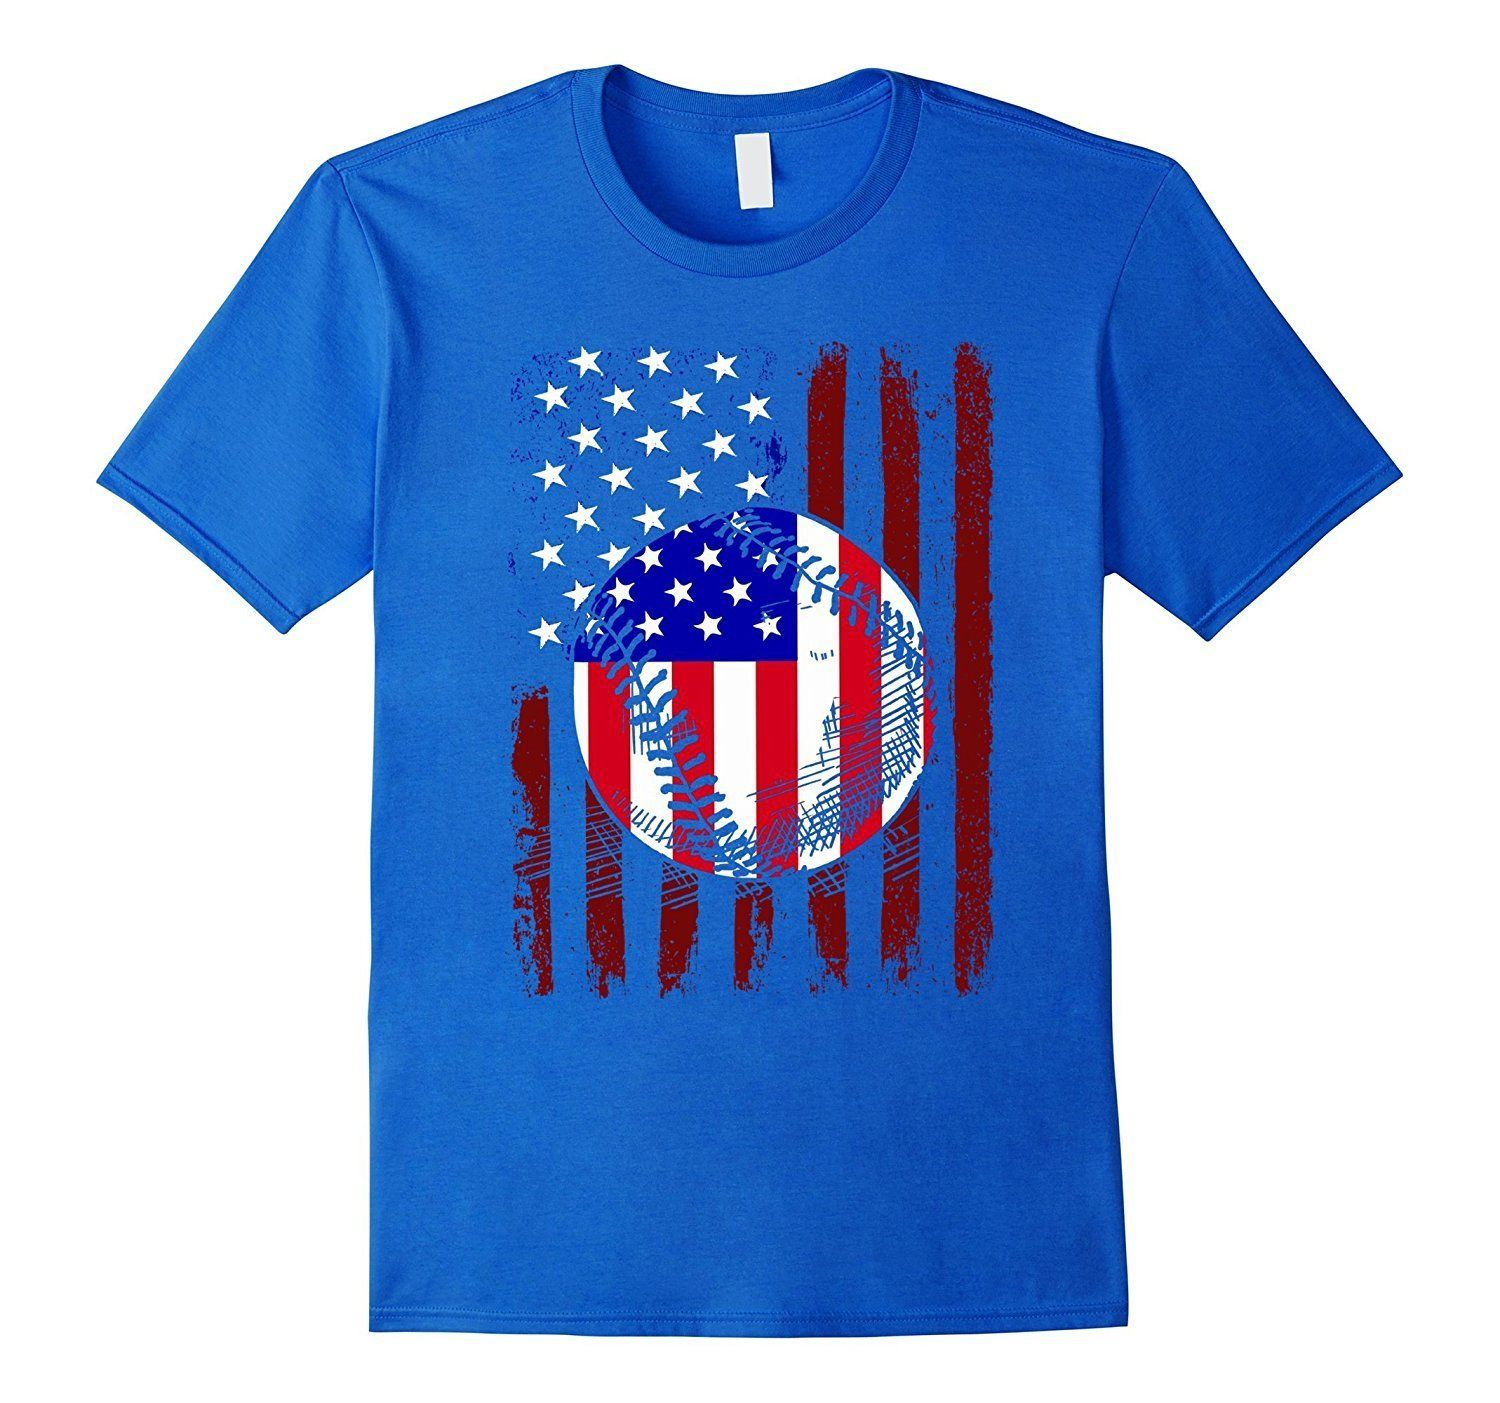 American Flag Baseball Shirt Vintage Distressed Design